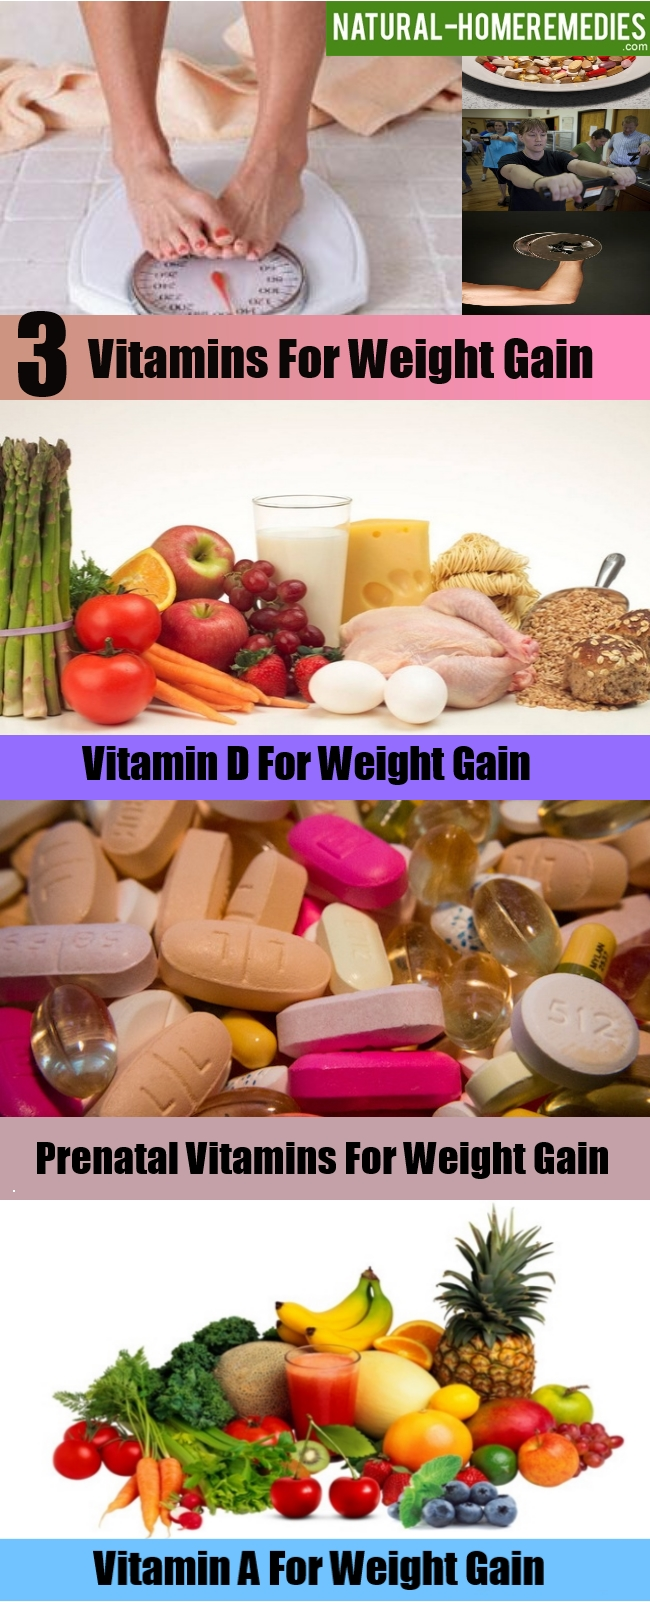 3 Vitamins For Weight Gain – Natural Home Remedies & Supplements